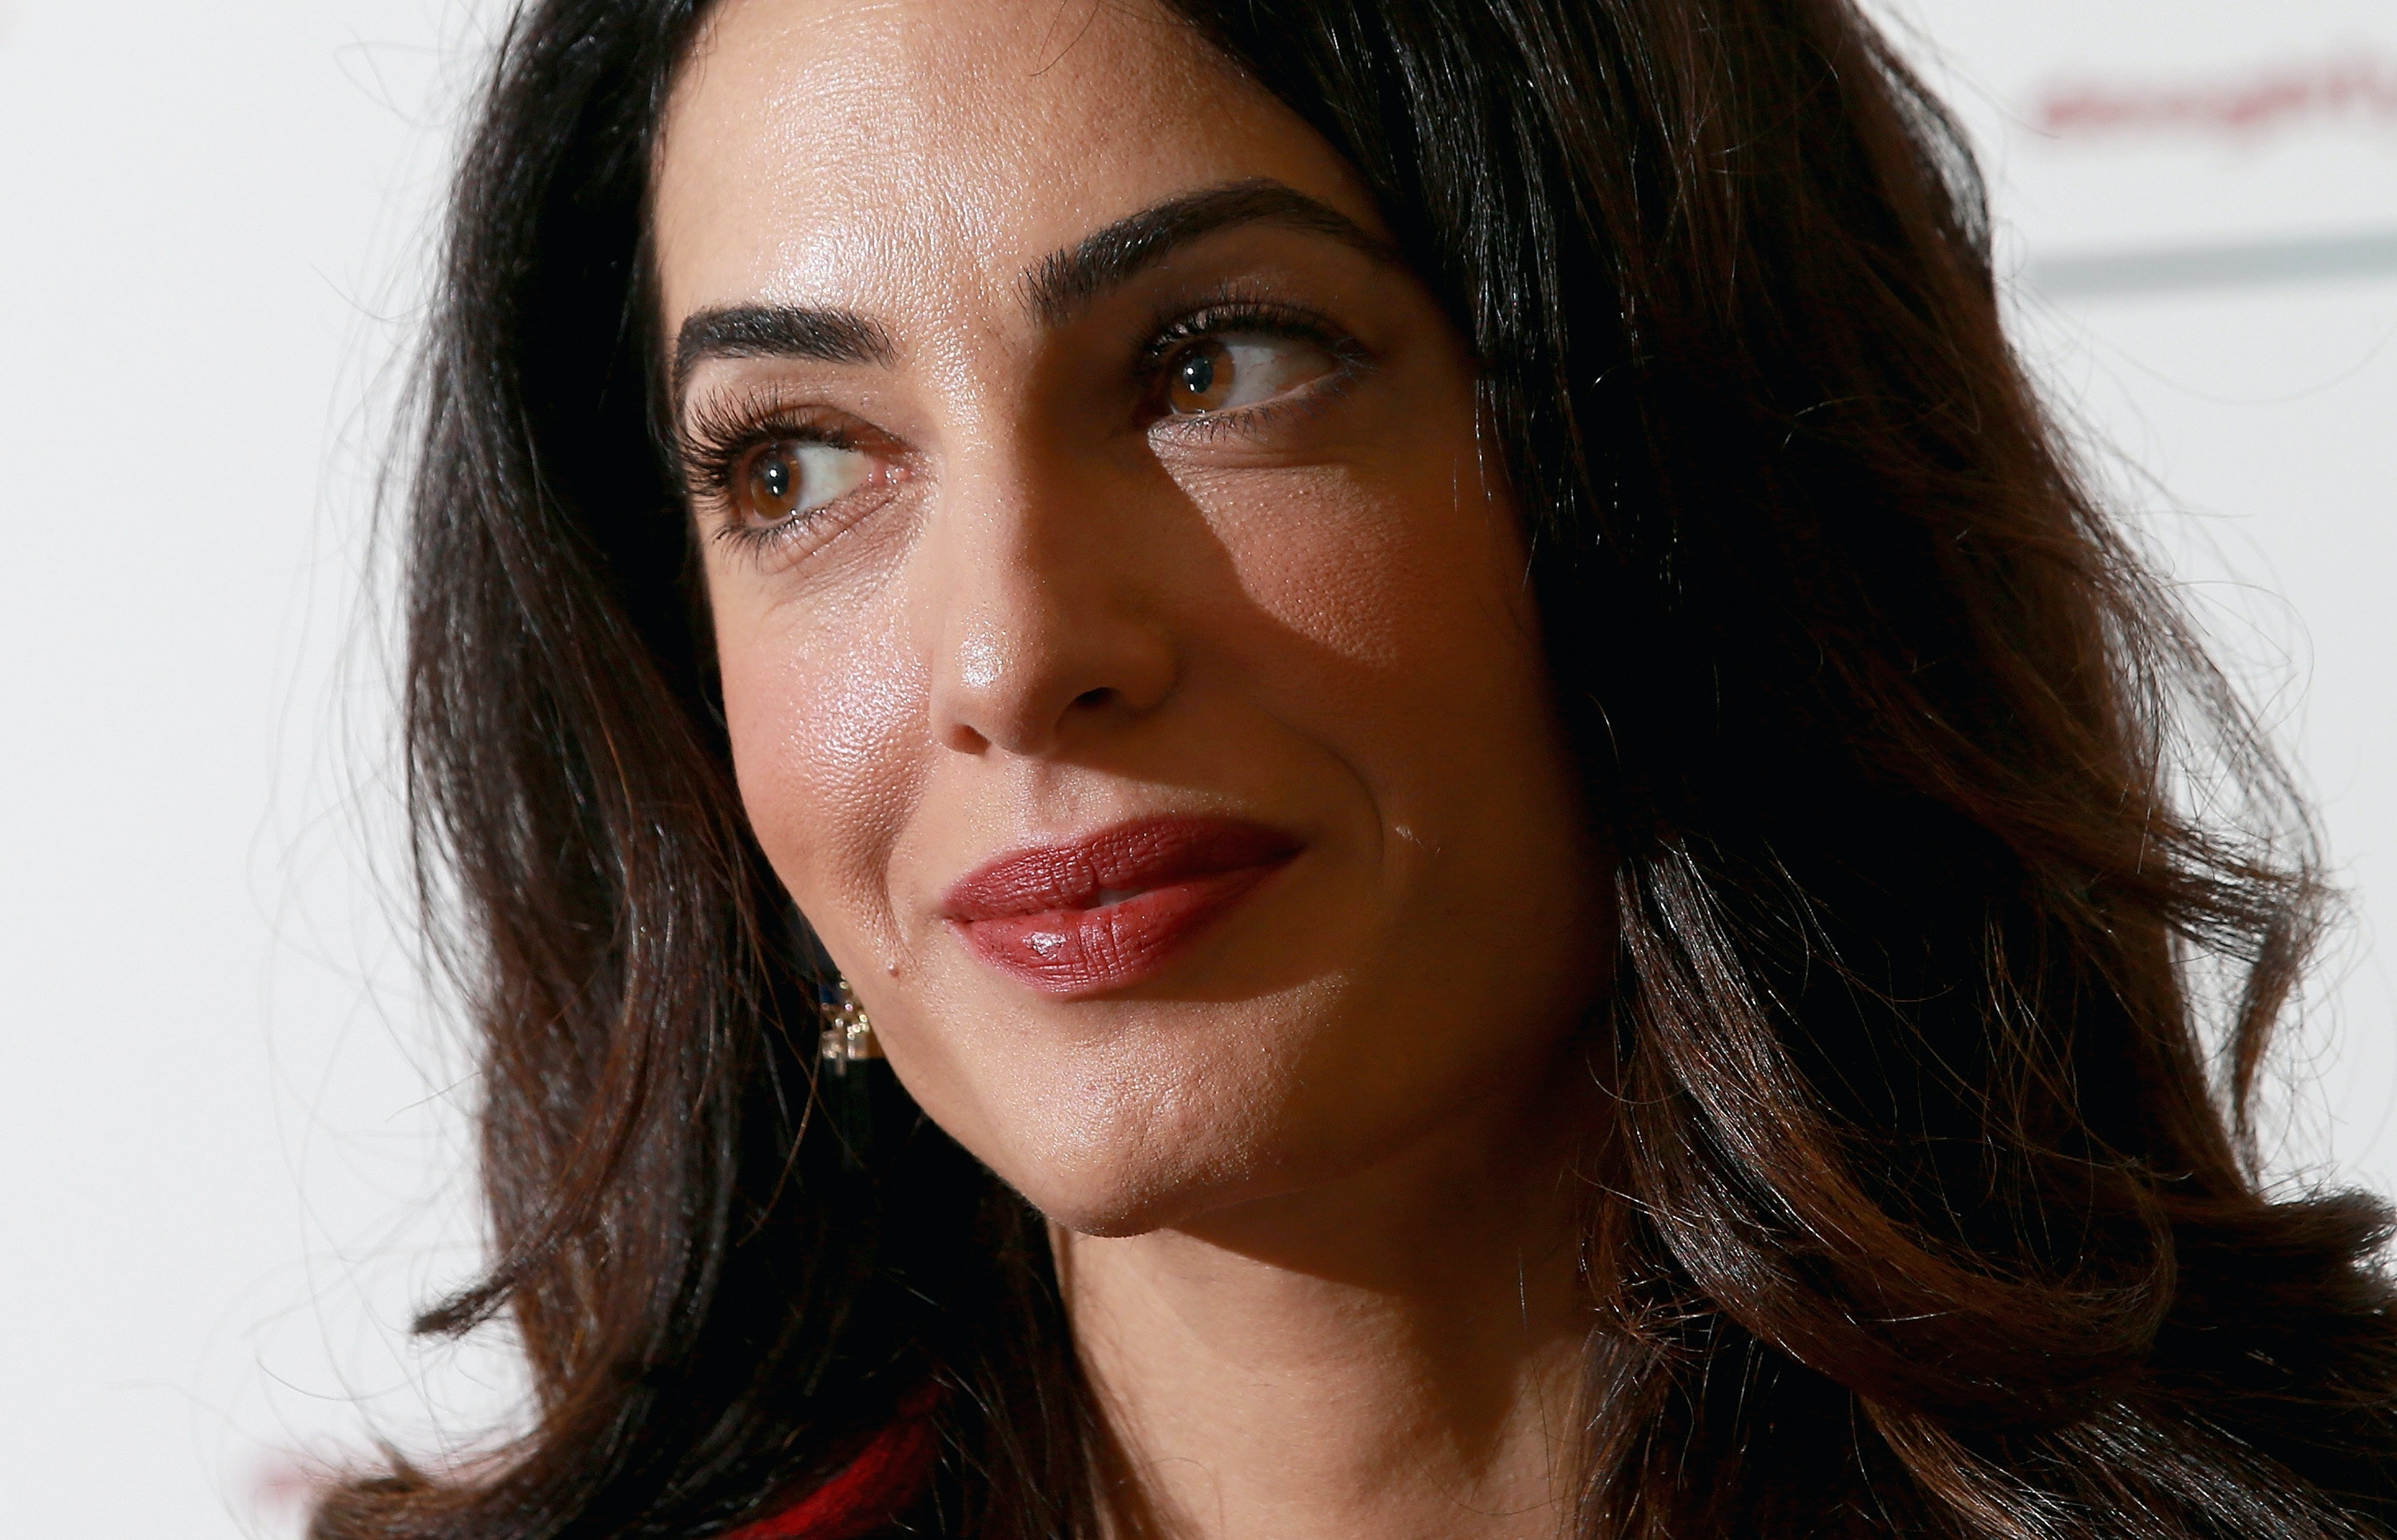 Amal Clooney Feminist Quotes Show She's Going To Be One